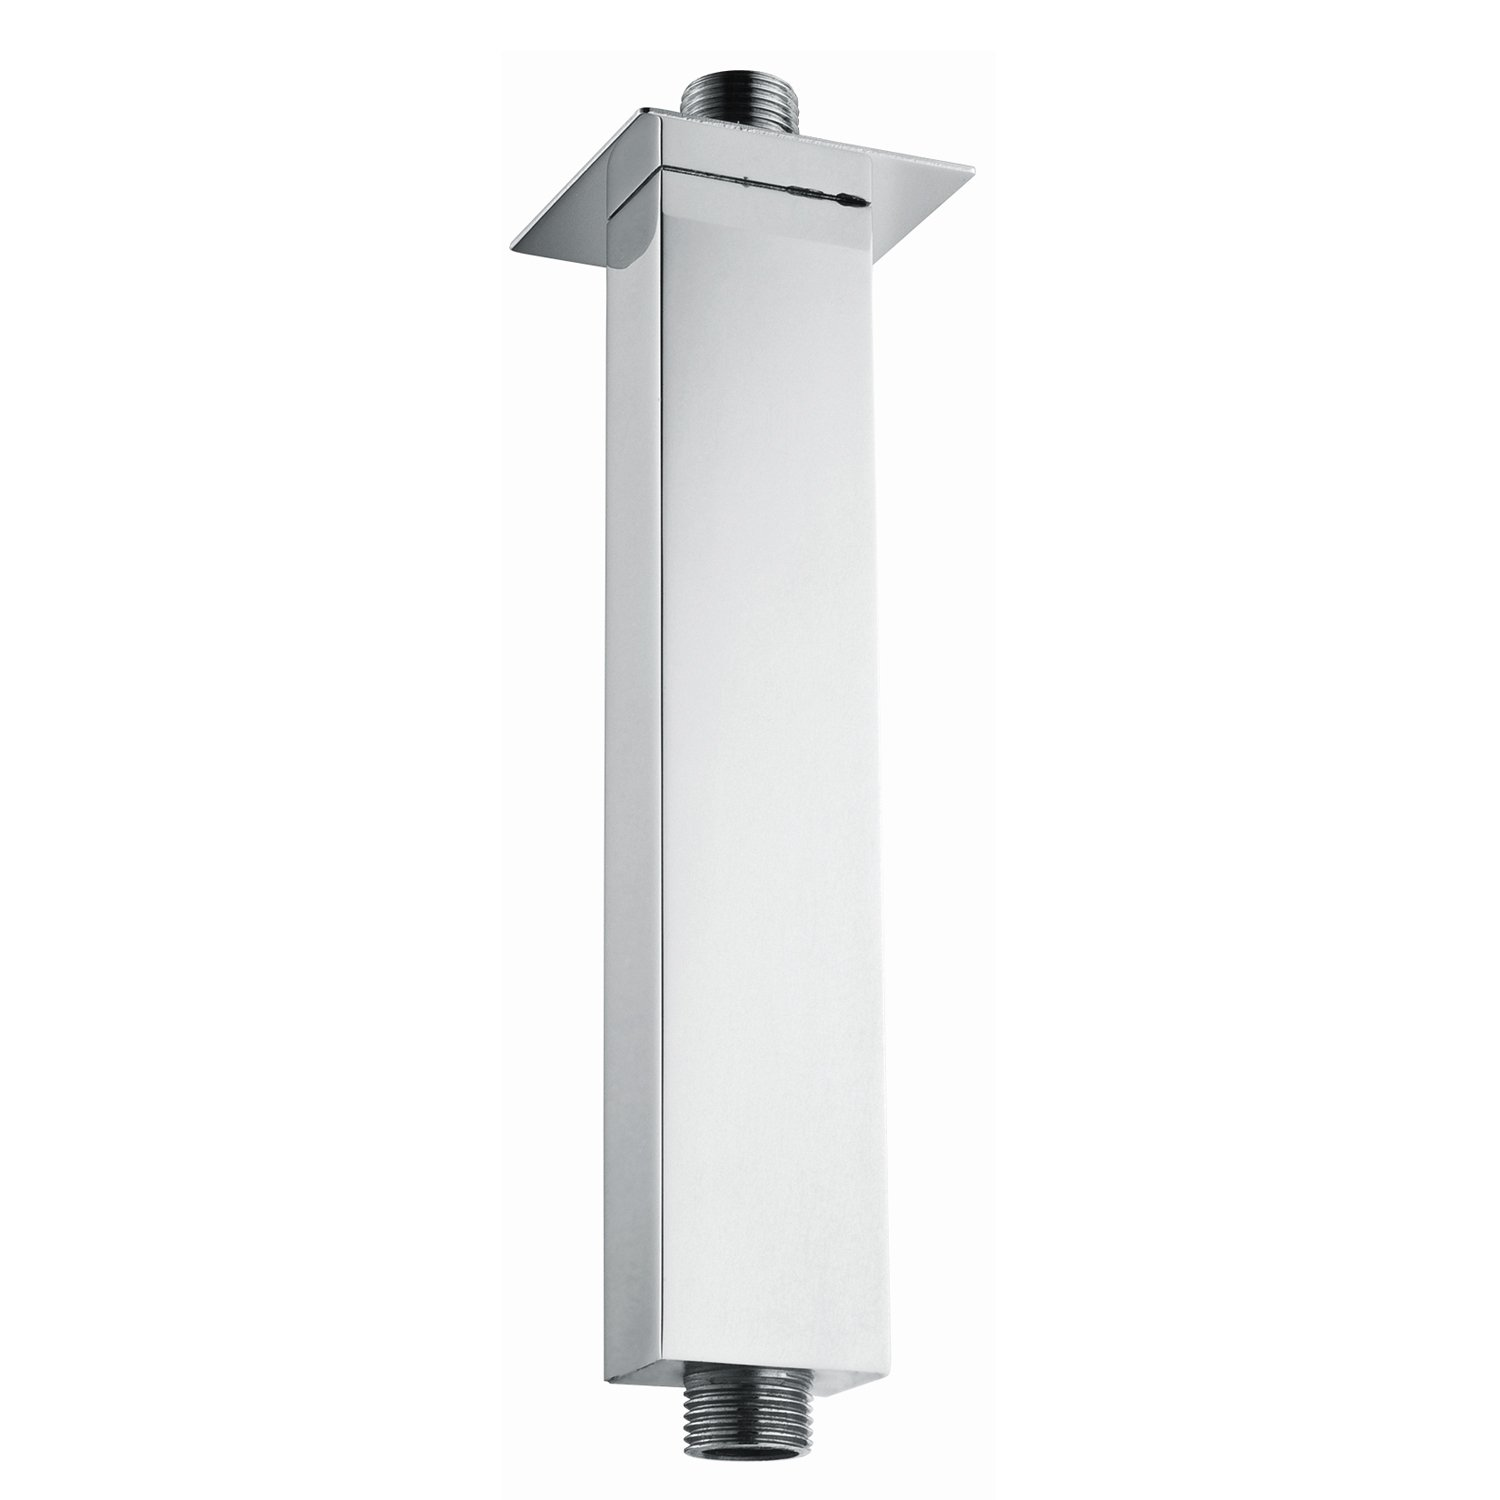 Rak 120mm Chrome Square Ceiling Shower